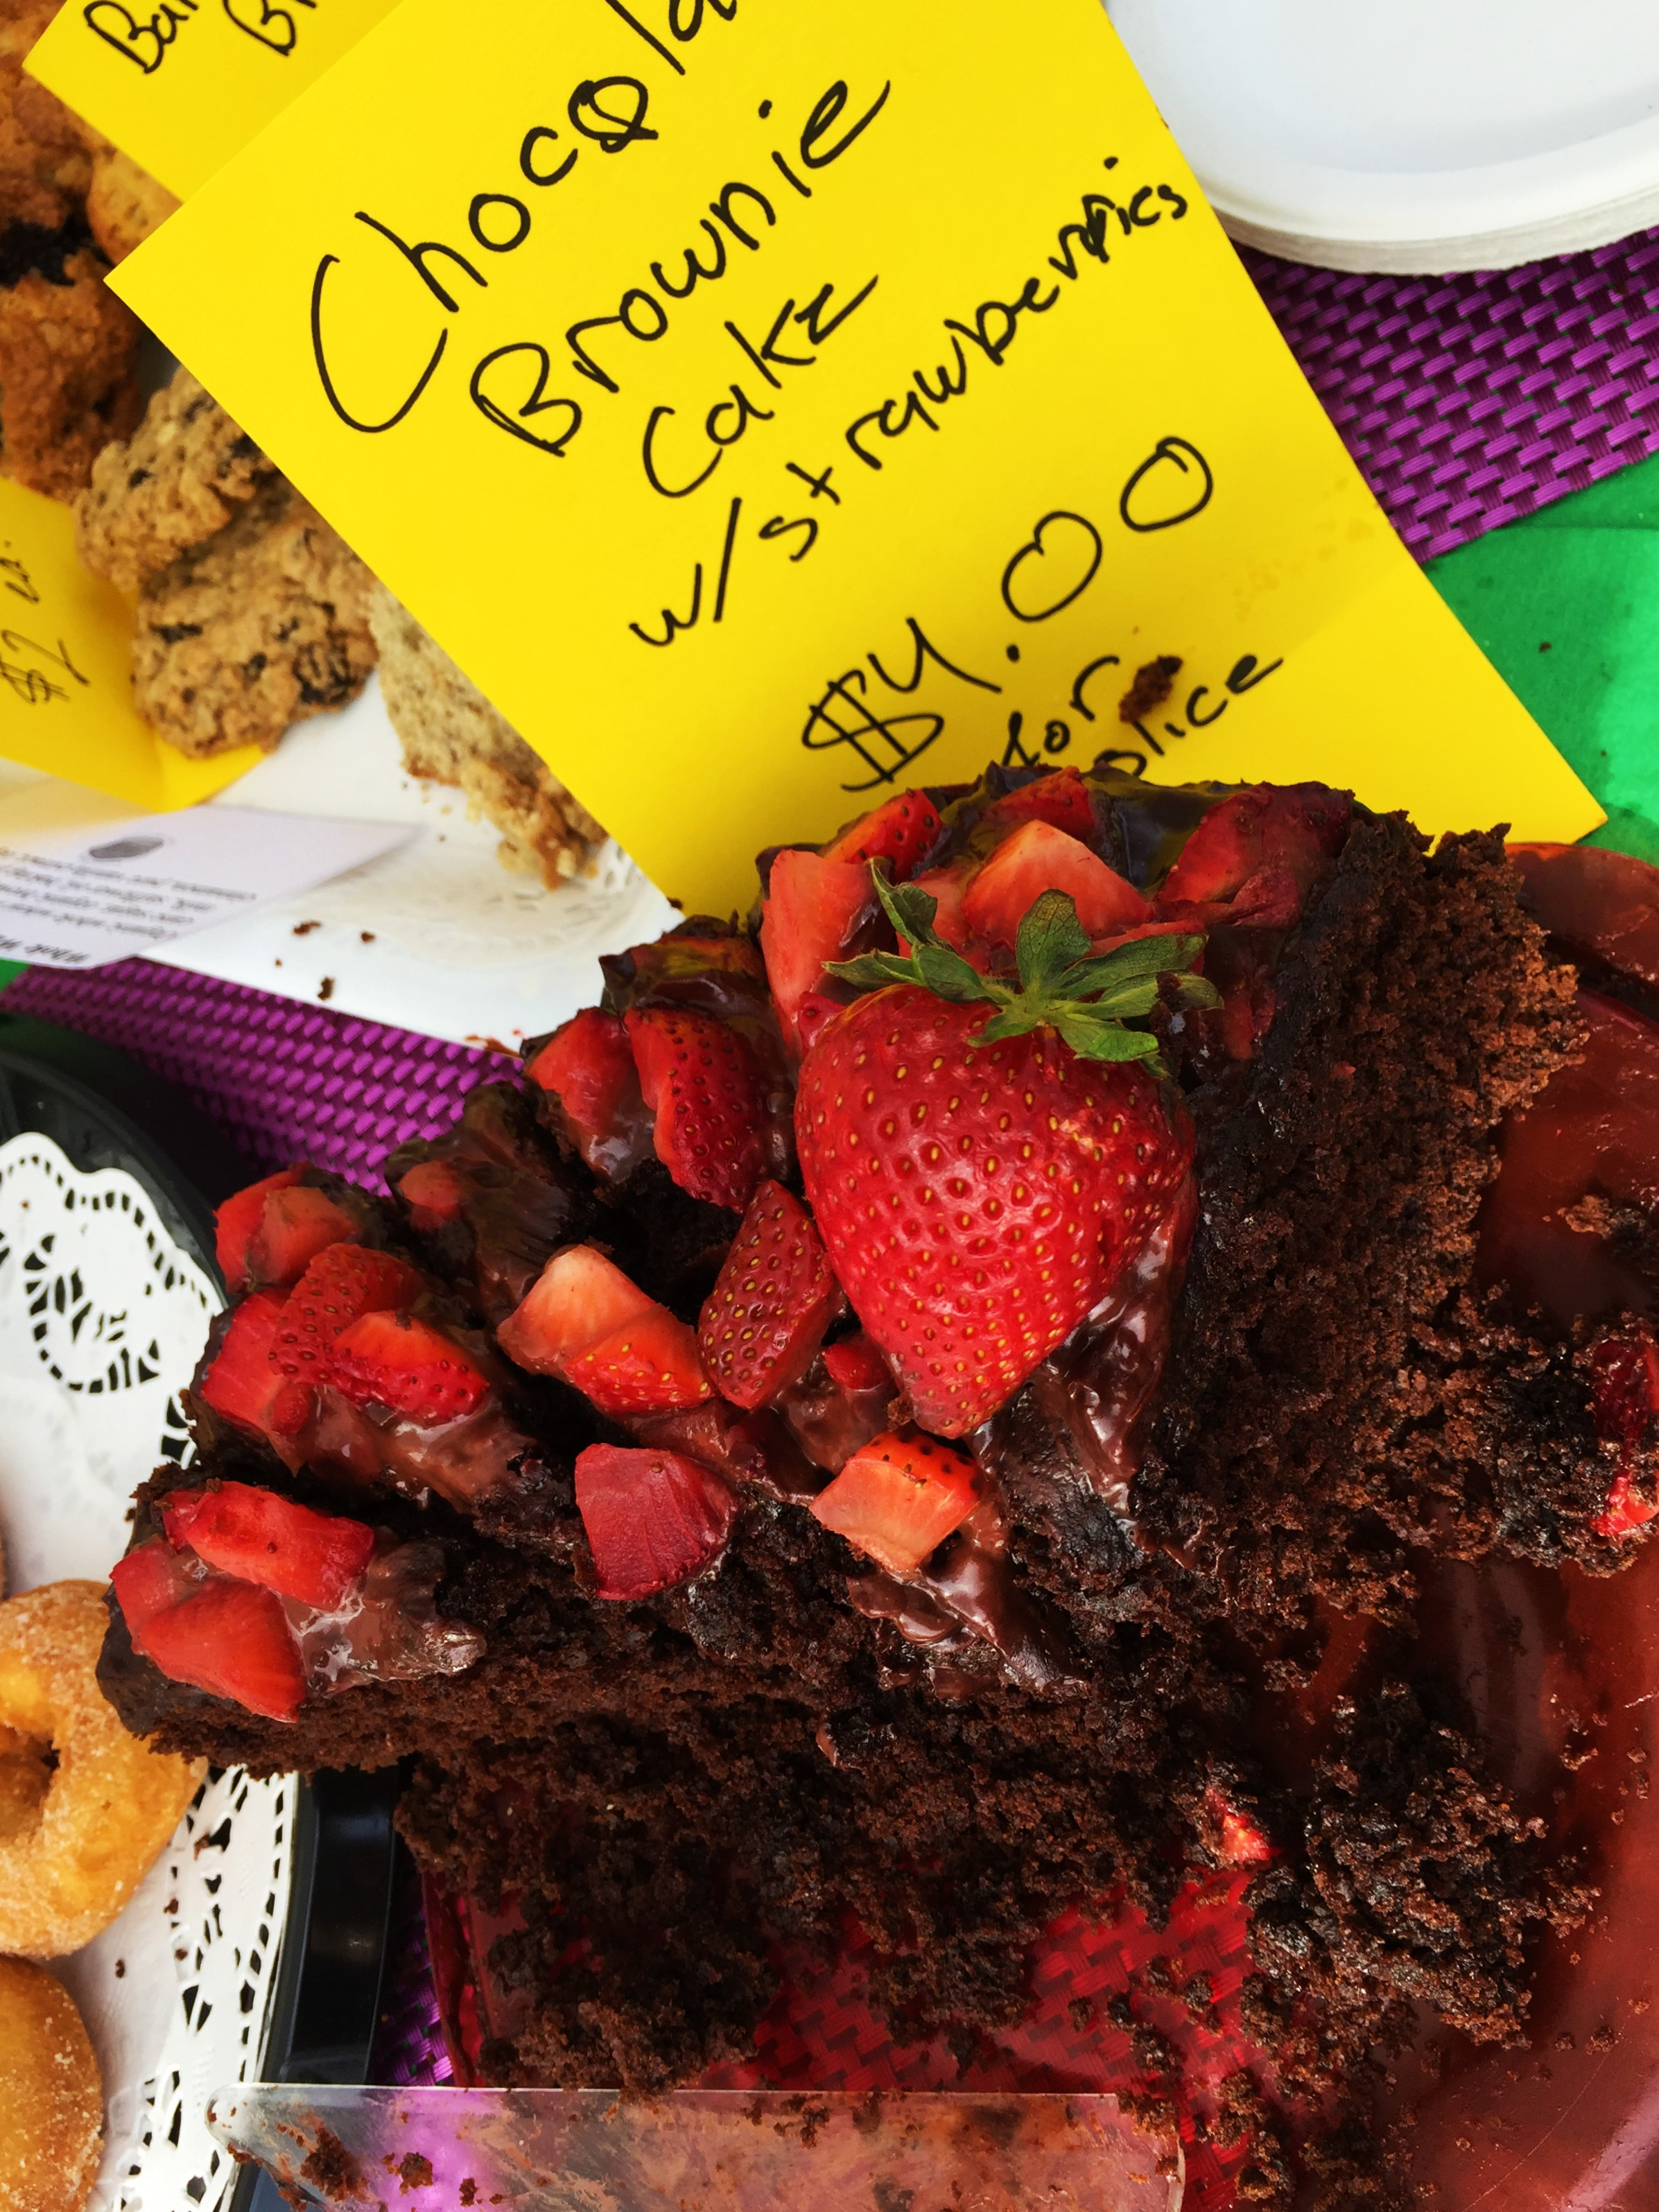 This delicious cake made by volunteer Nece went fast!